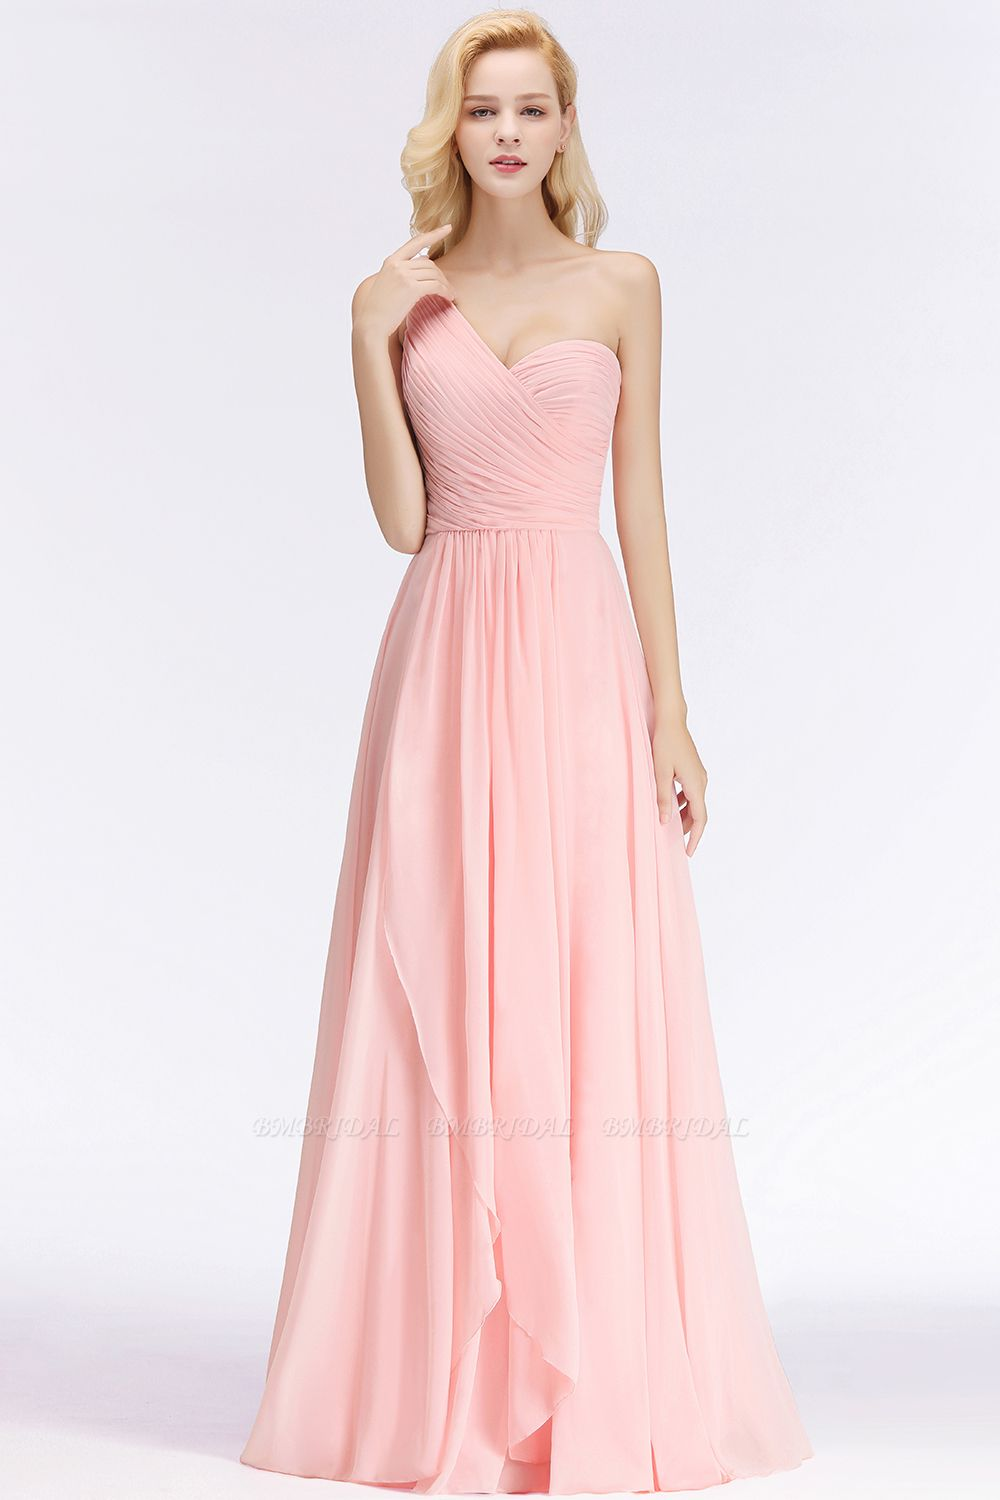 Chic One-shoulder Ruffle Sleeveless Bridesmaid Dress Cheap Online